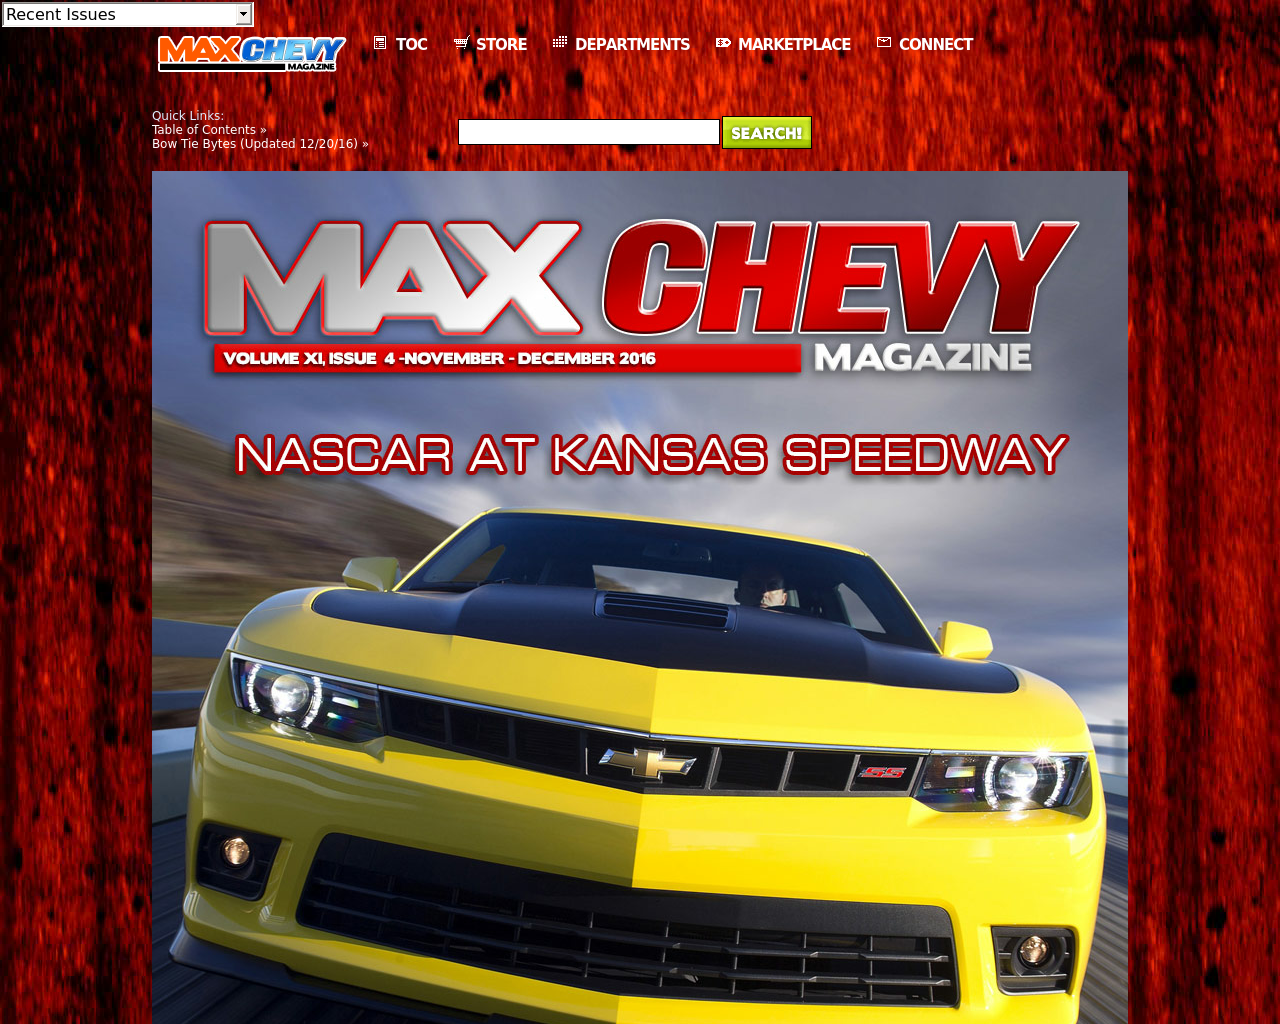 Max-Chevy-Magazine-Advertising-Reviews-Pricing